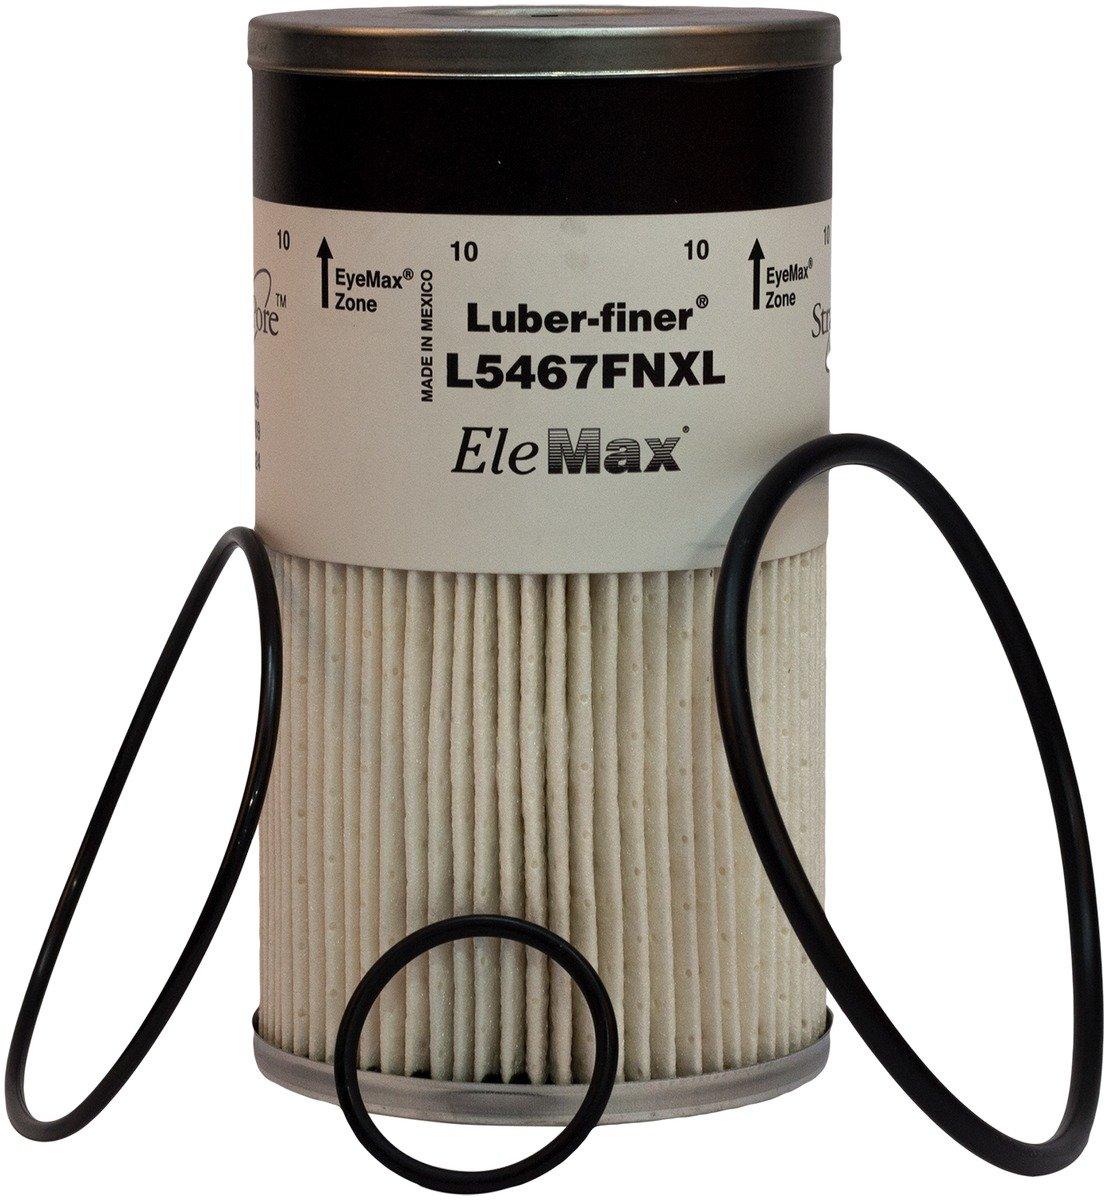 Luber-finer L5467FNXL Heavy Duty Fuel Filter by Luber-finer